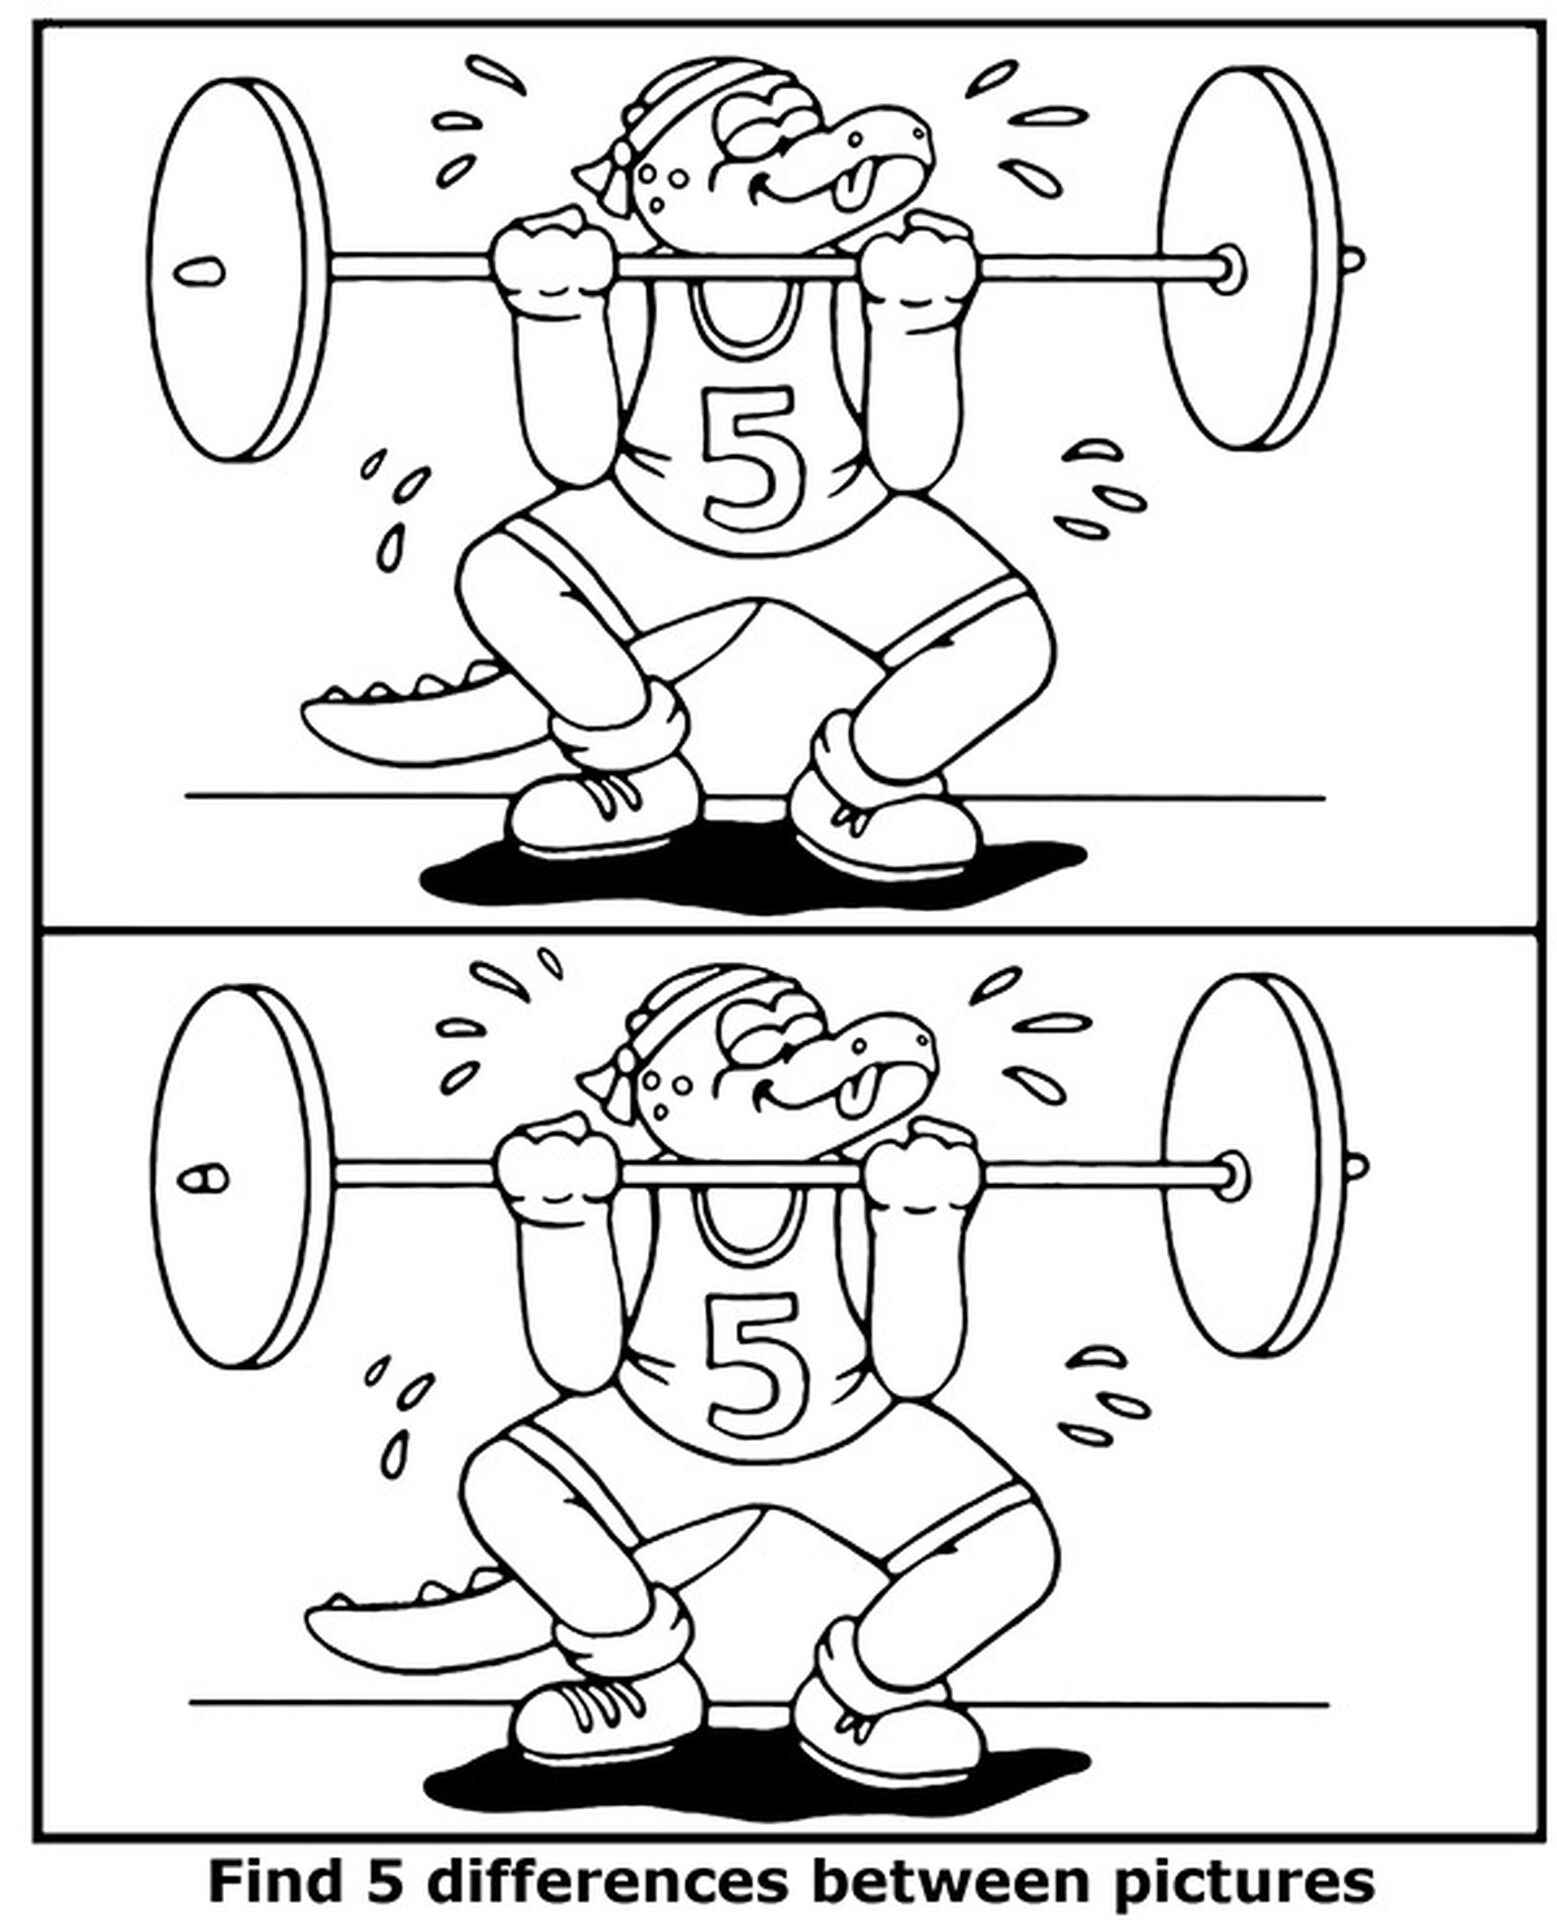 Find 5 Differences Weightlifting Coloring Page